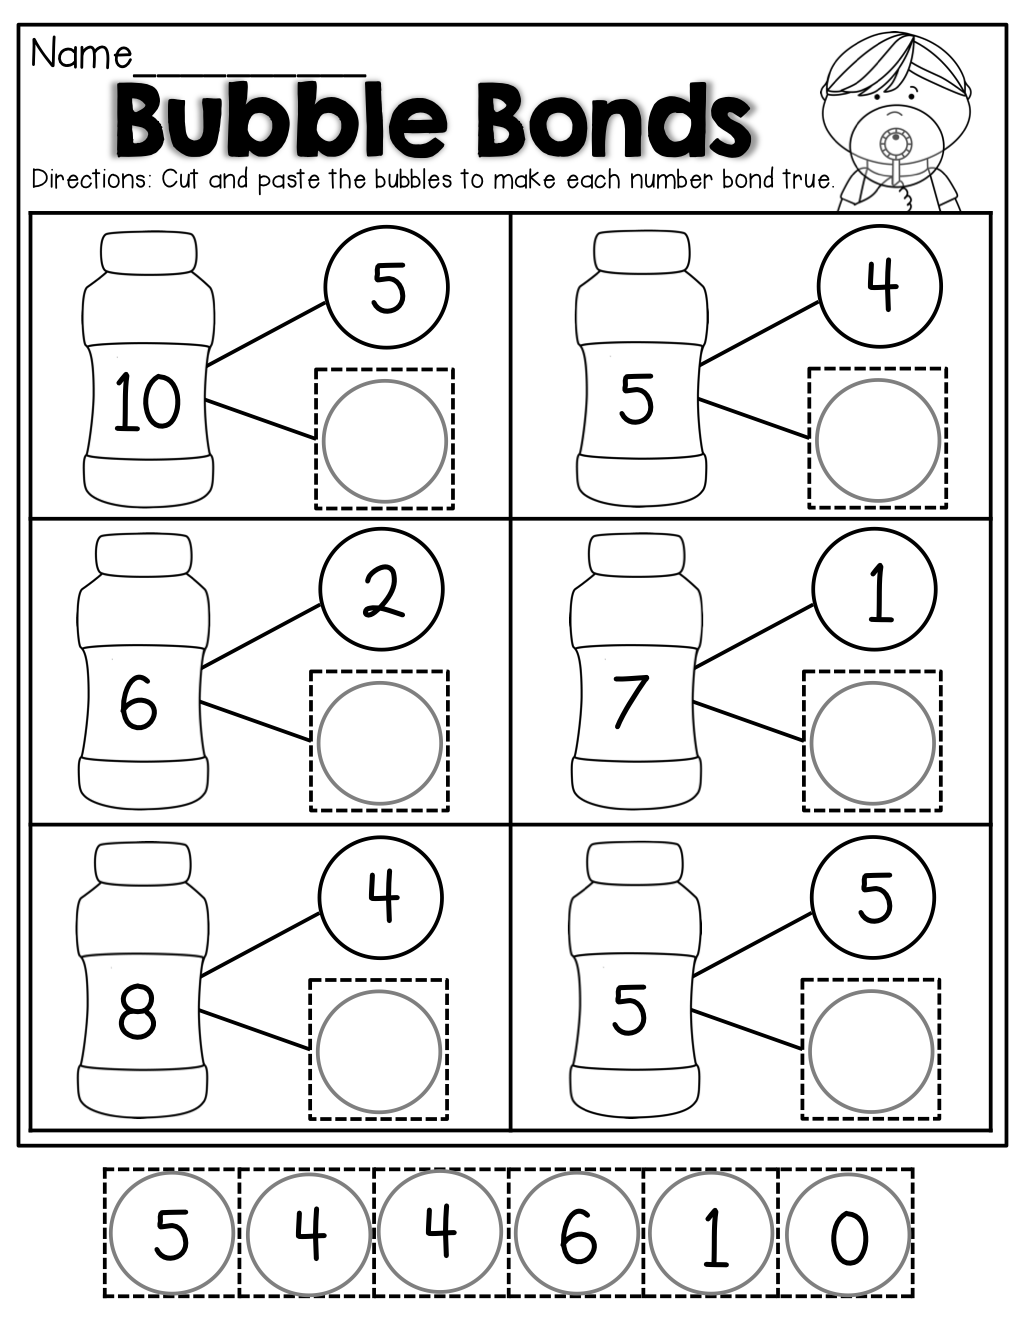 Worksheets Number Bonds Worksheets number bubble bonds cut and paste kindergarten activities paste